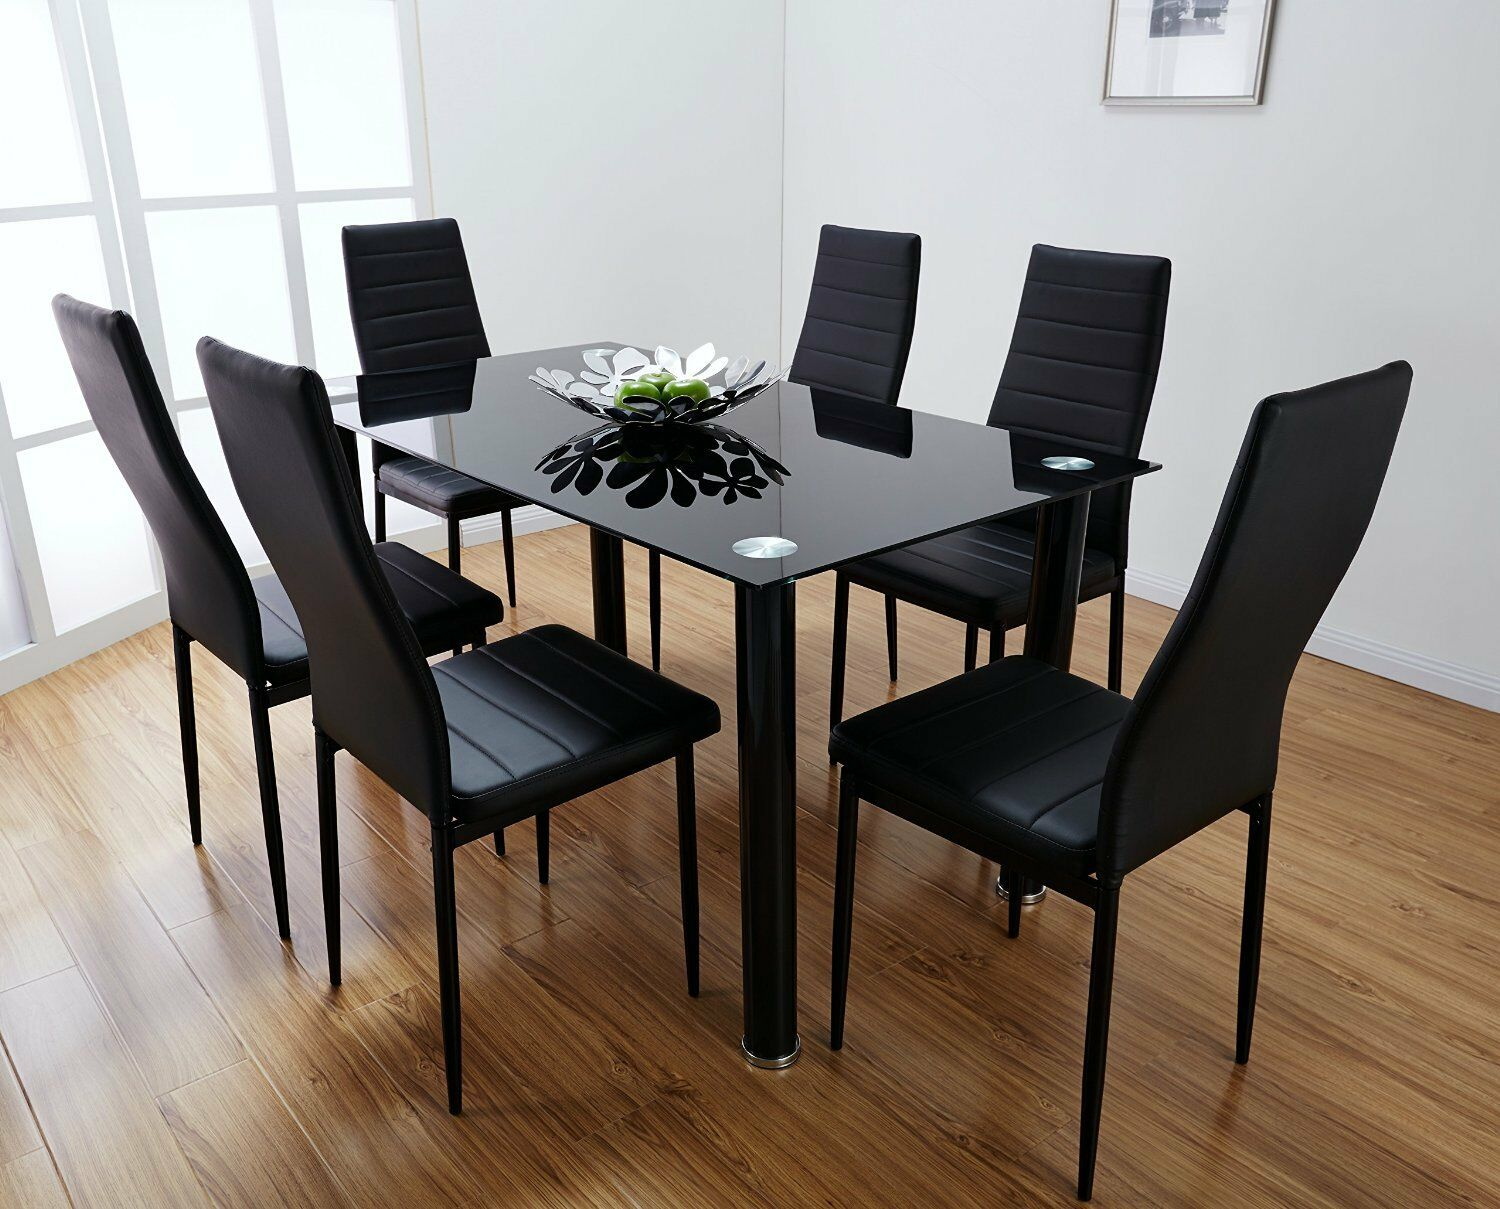 Lunar Rectangle Glass Dining Table Set and 6 Black Faux  : Lunar Rectangle Glass Dining Table Set and 6 from picclick.co.uk size 1500 x 1209 jpeg 229kB